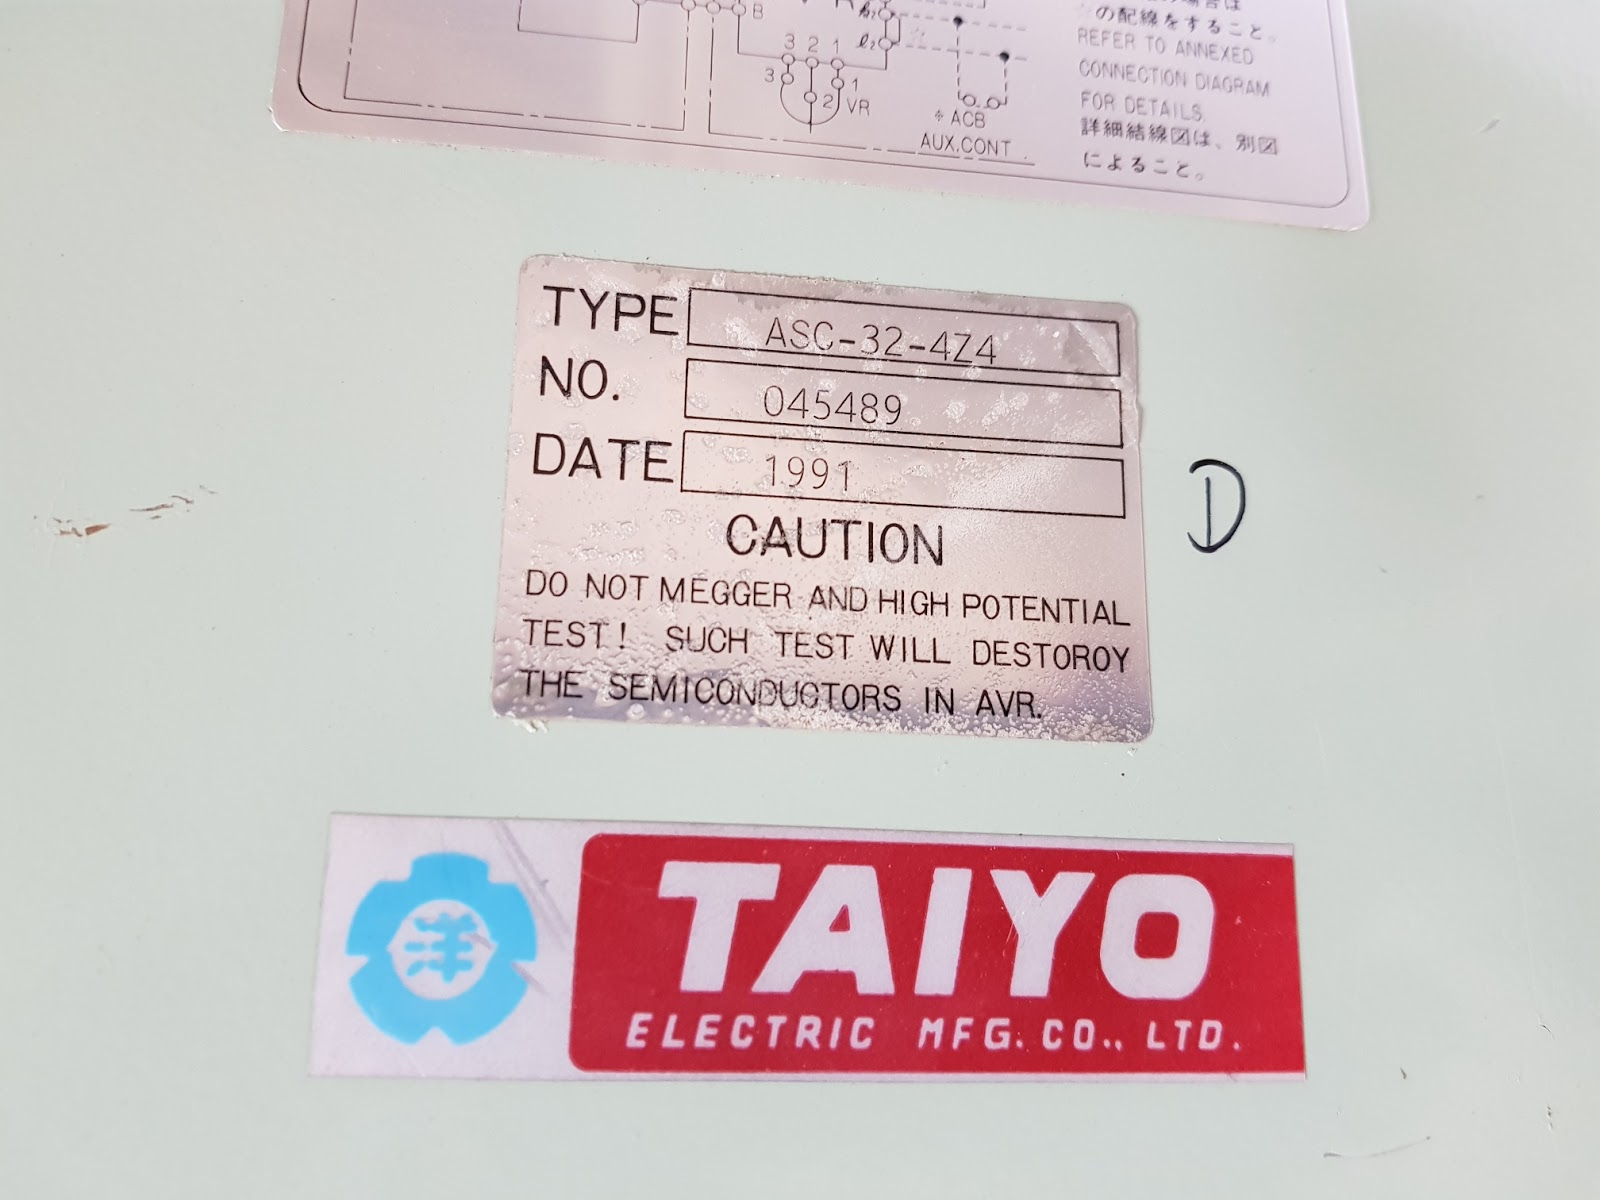 taiyo automatic voltage regulator asc 32 4z4 type asc 32 4z4 serial no 045489 date 1998 1991 1996 mfg by taiyo electric co ltd  [ 1600 x 1200 Pixel ]